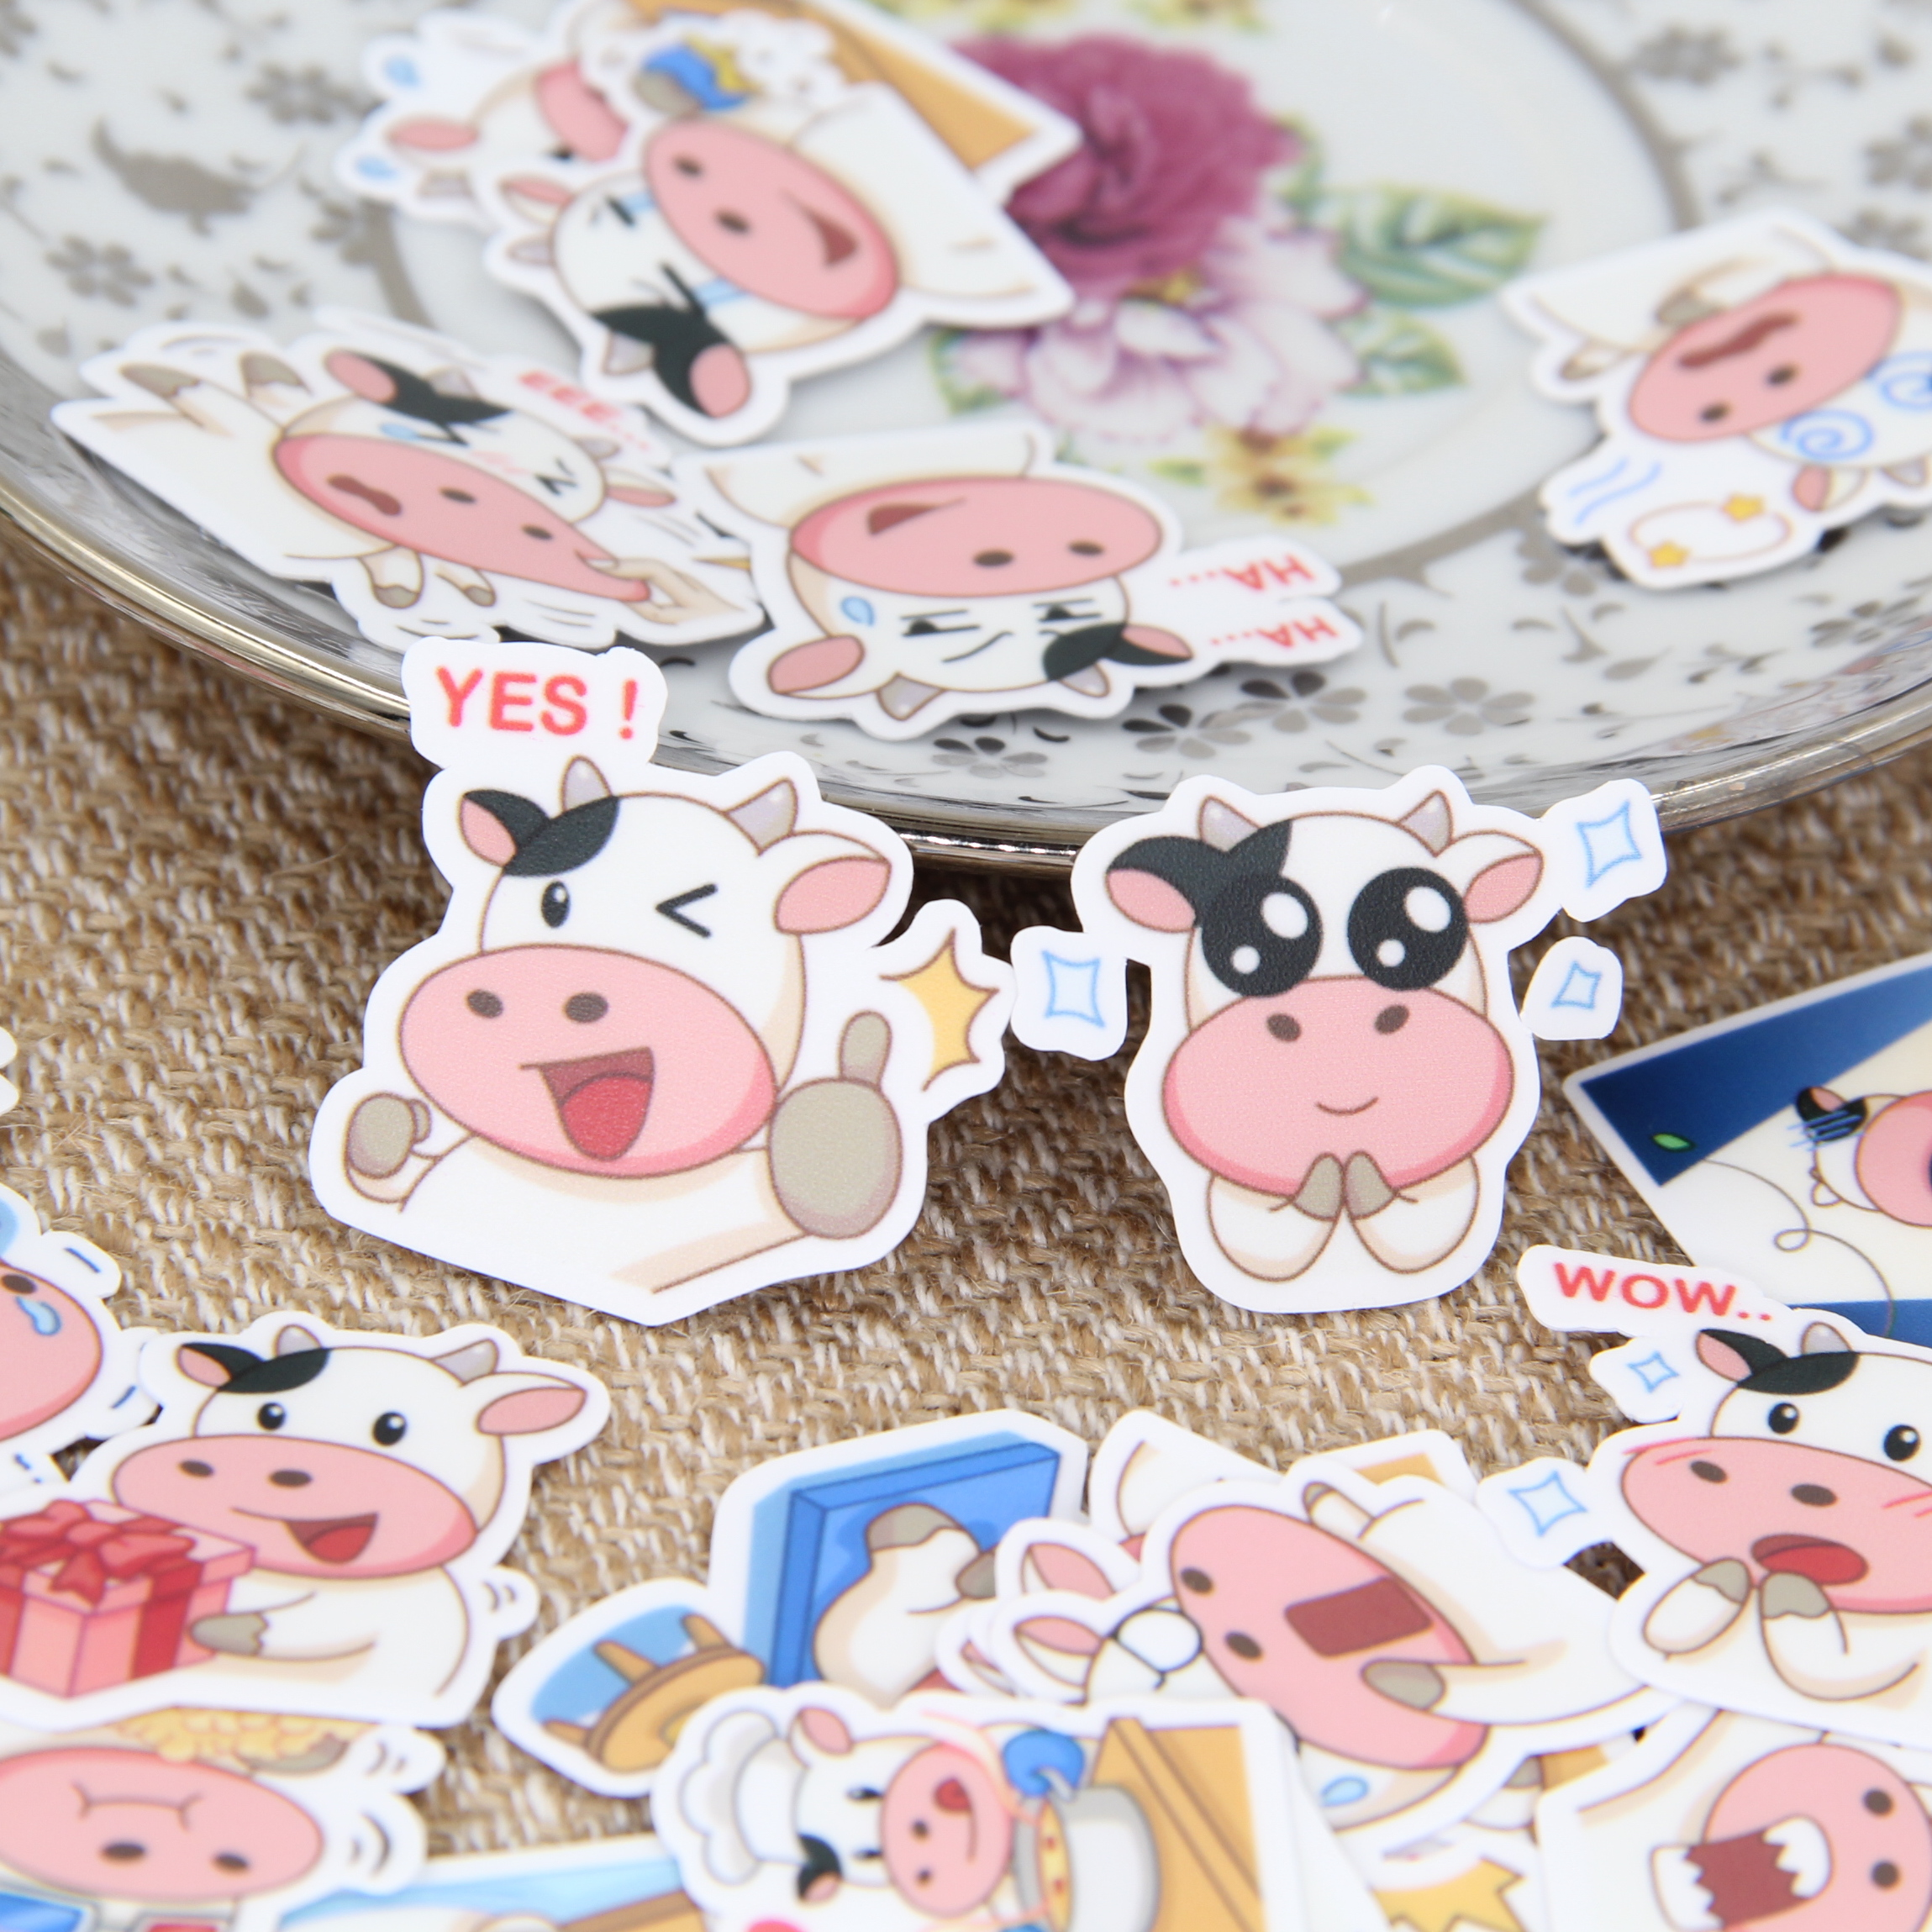 40pcs Milch Cow Cute Dairy Cattle Cows Scrapbooking Stickers DIY Craft DIY Sticker Pakc Photo Albums Deco Diary Deco claw disorders in dairy cows under smallholder zero grazing units